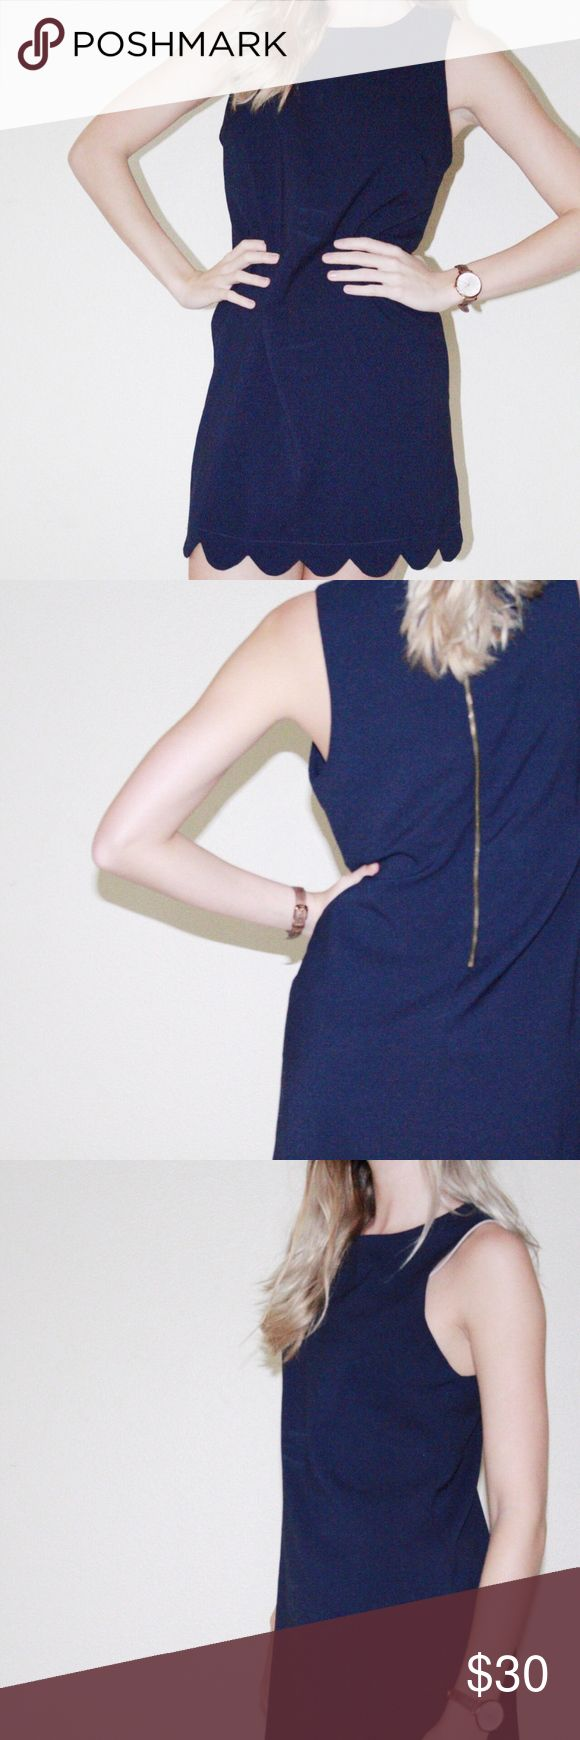 Navy mini dress Navy mini petal dress with a zip up back from Francesca's in size medium. 95% Polyester and 5% spandex style #57000 RN#146051. Fitted dress worn once and material is in brand new condition. Francesca's Collections Dresses Mini